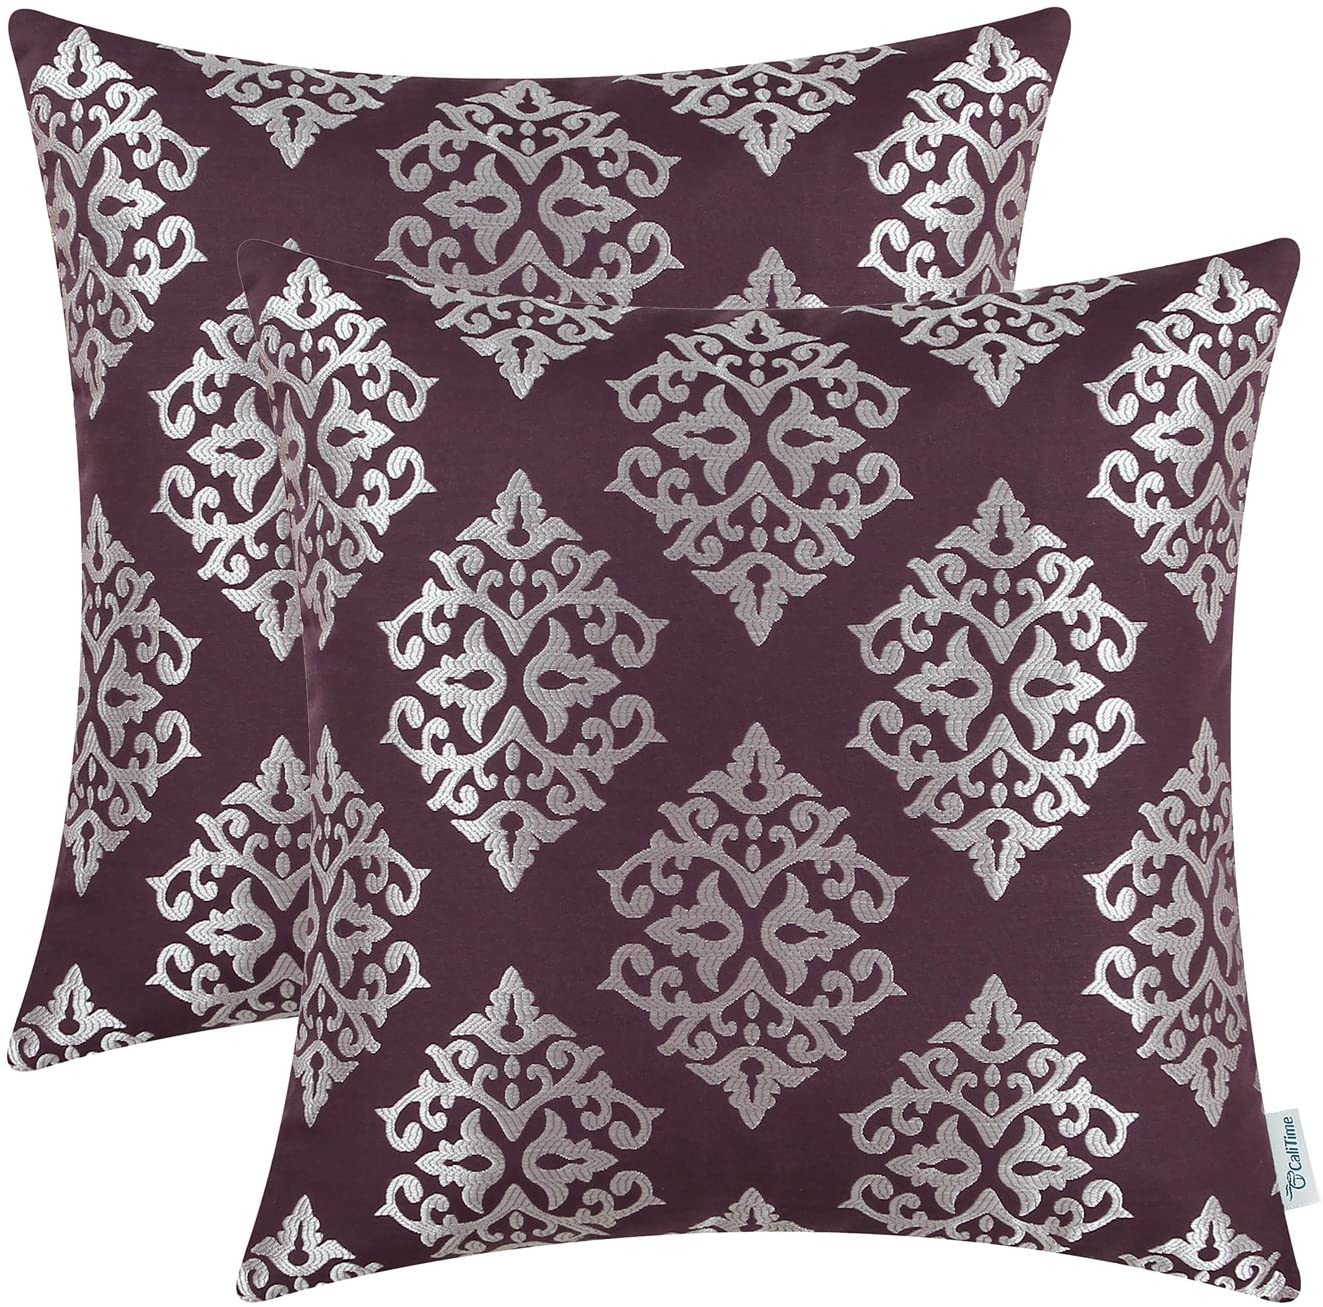 Pack Of 2 Calitime Soft Jacquard Throw Pillow Covers Cases For Couch Sofa Home Decoration Vintage Damask Floral 18 X 18 Inches Aubergine Amazon Ca Home Kitchen